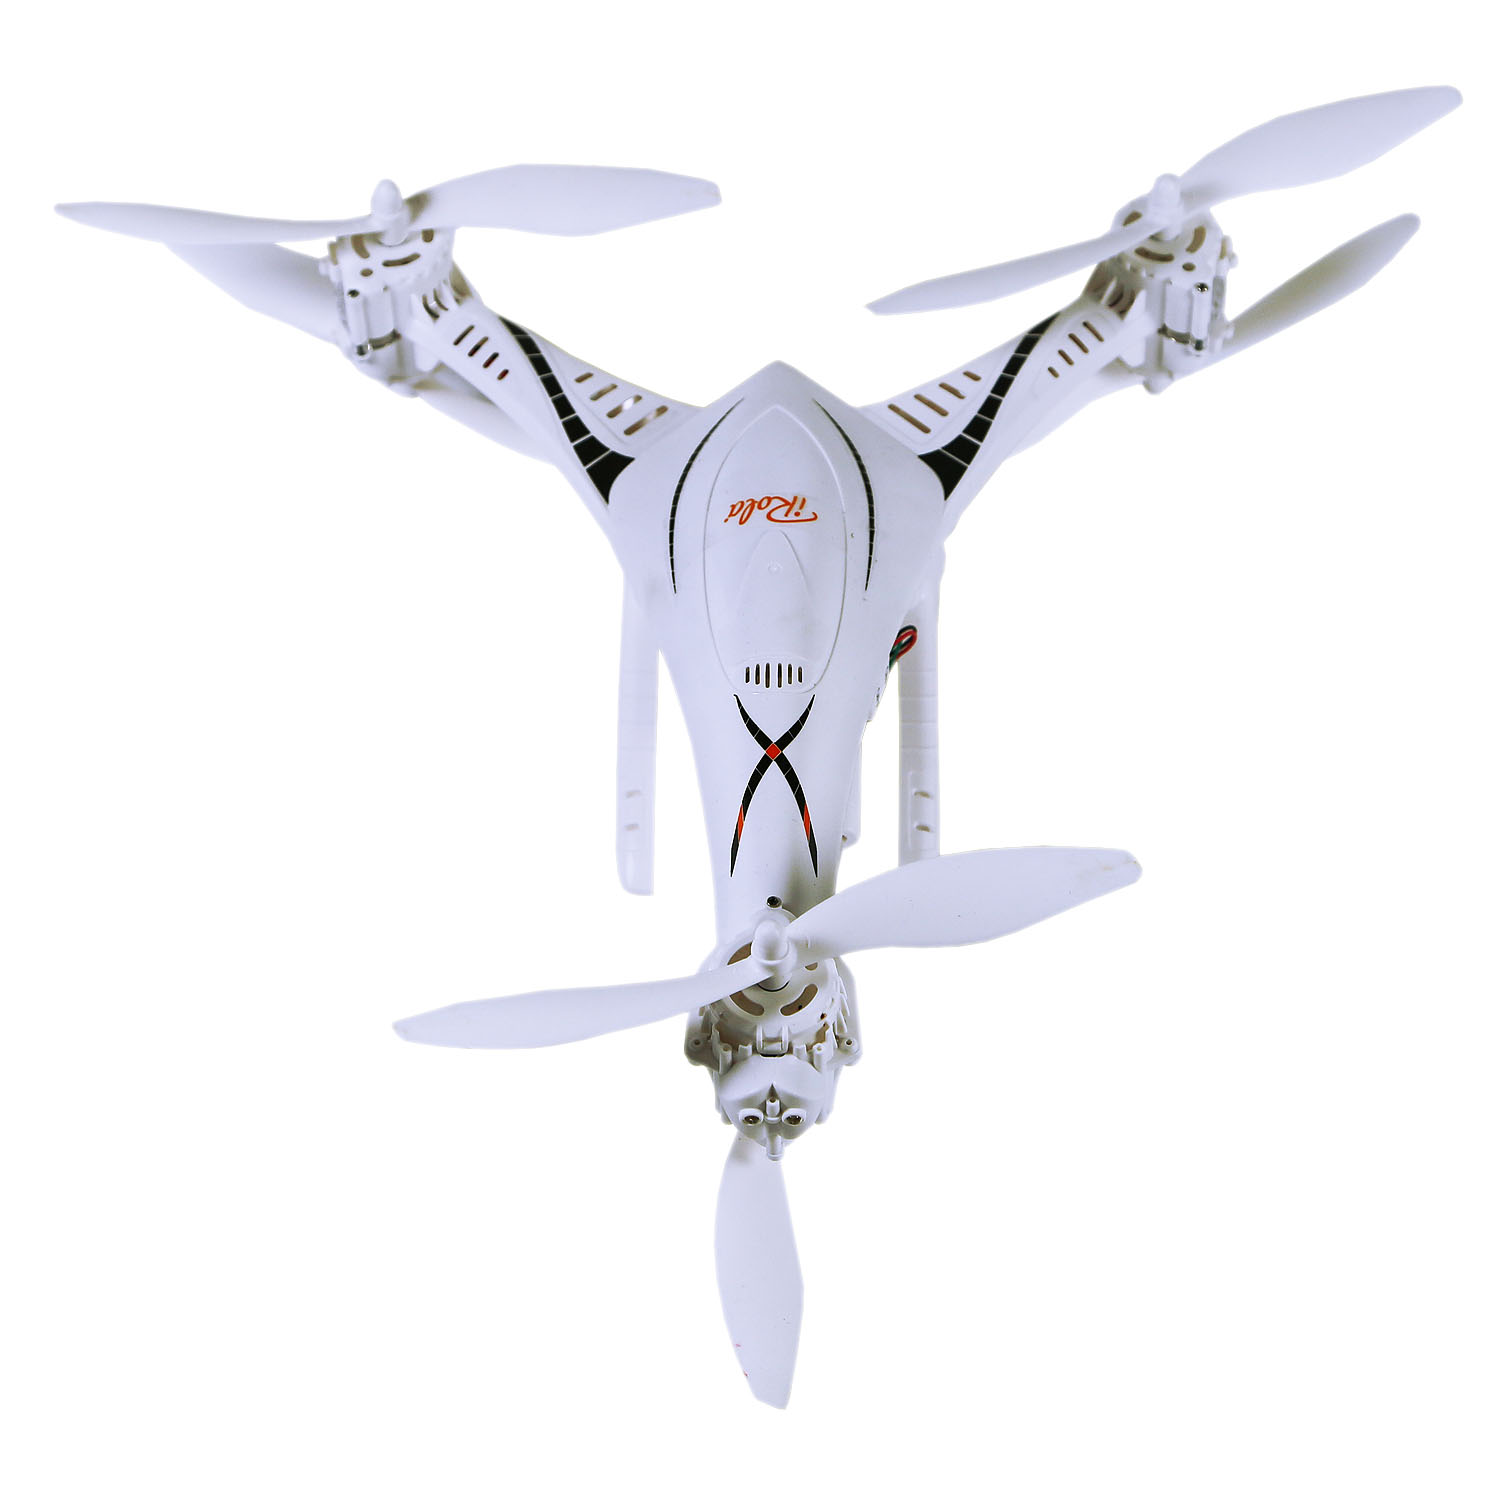 iRola - Remote Control 6-Axis Gyro/6-Motor Copter Drone with HD Camera